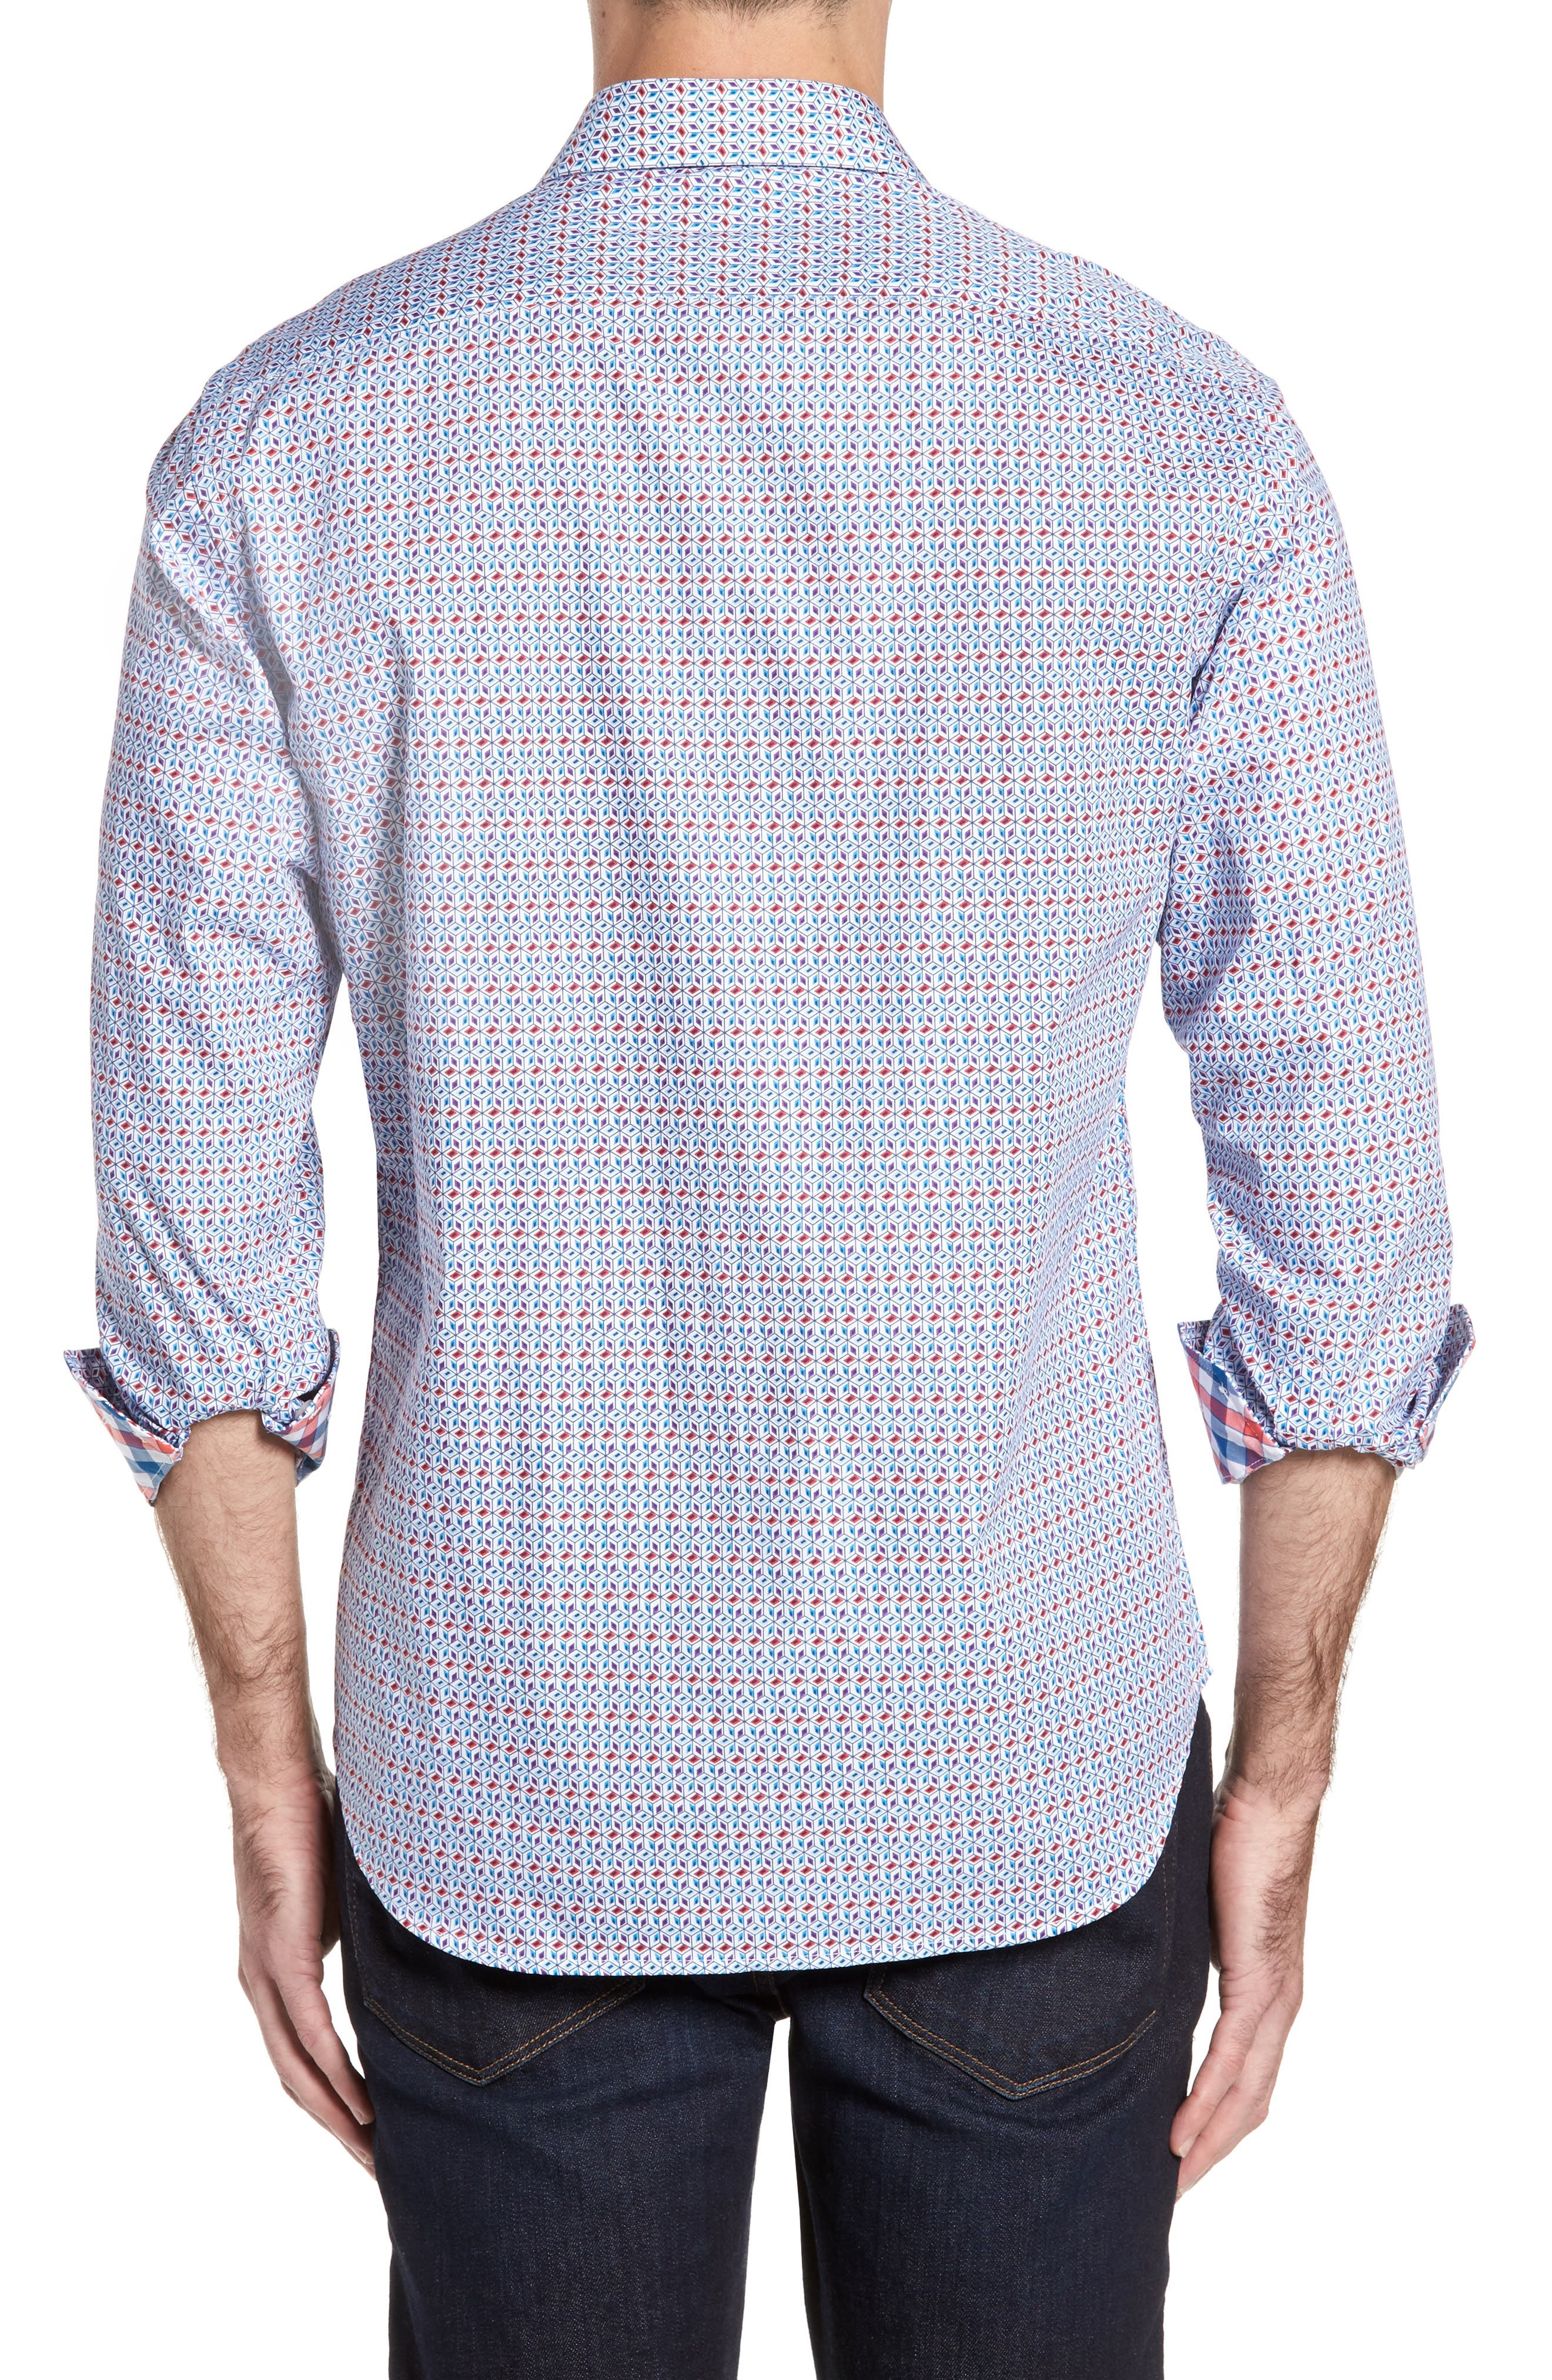 Angia Print Sport Shirt,                             Alternate thumbnail 2, color,                             Blue